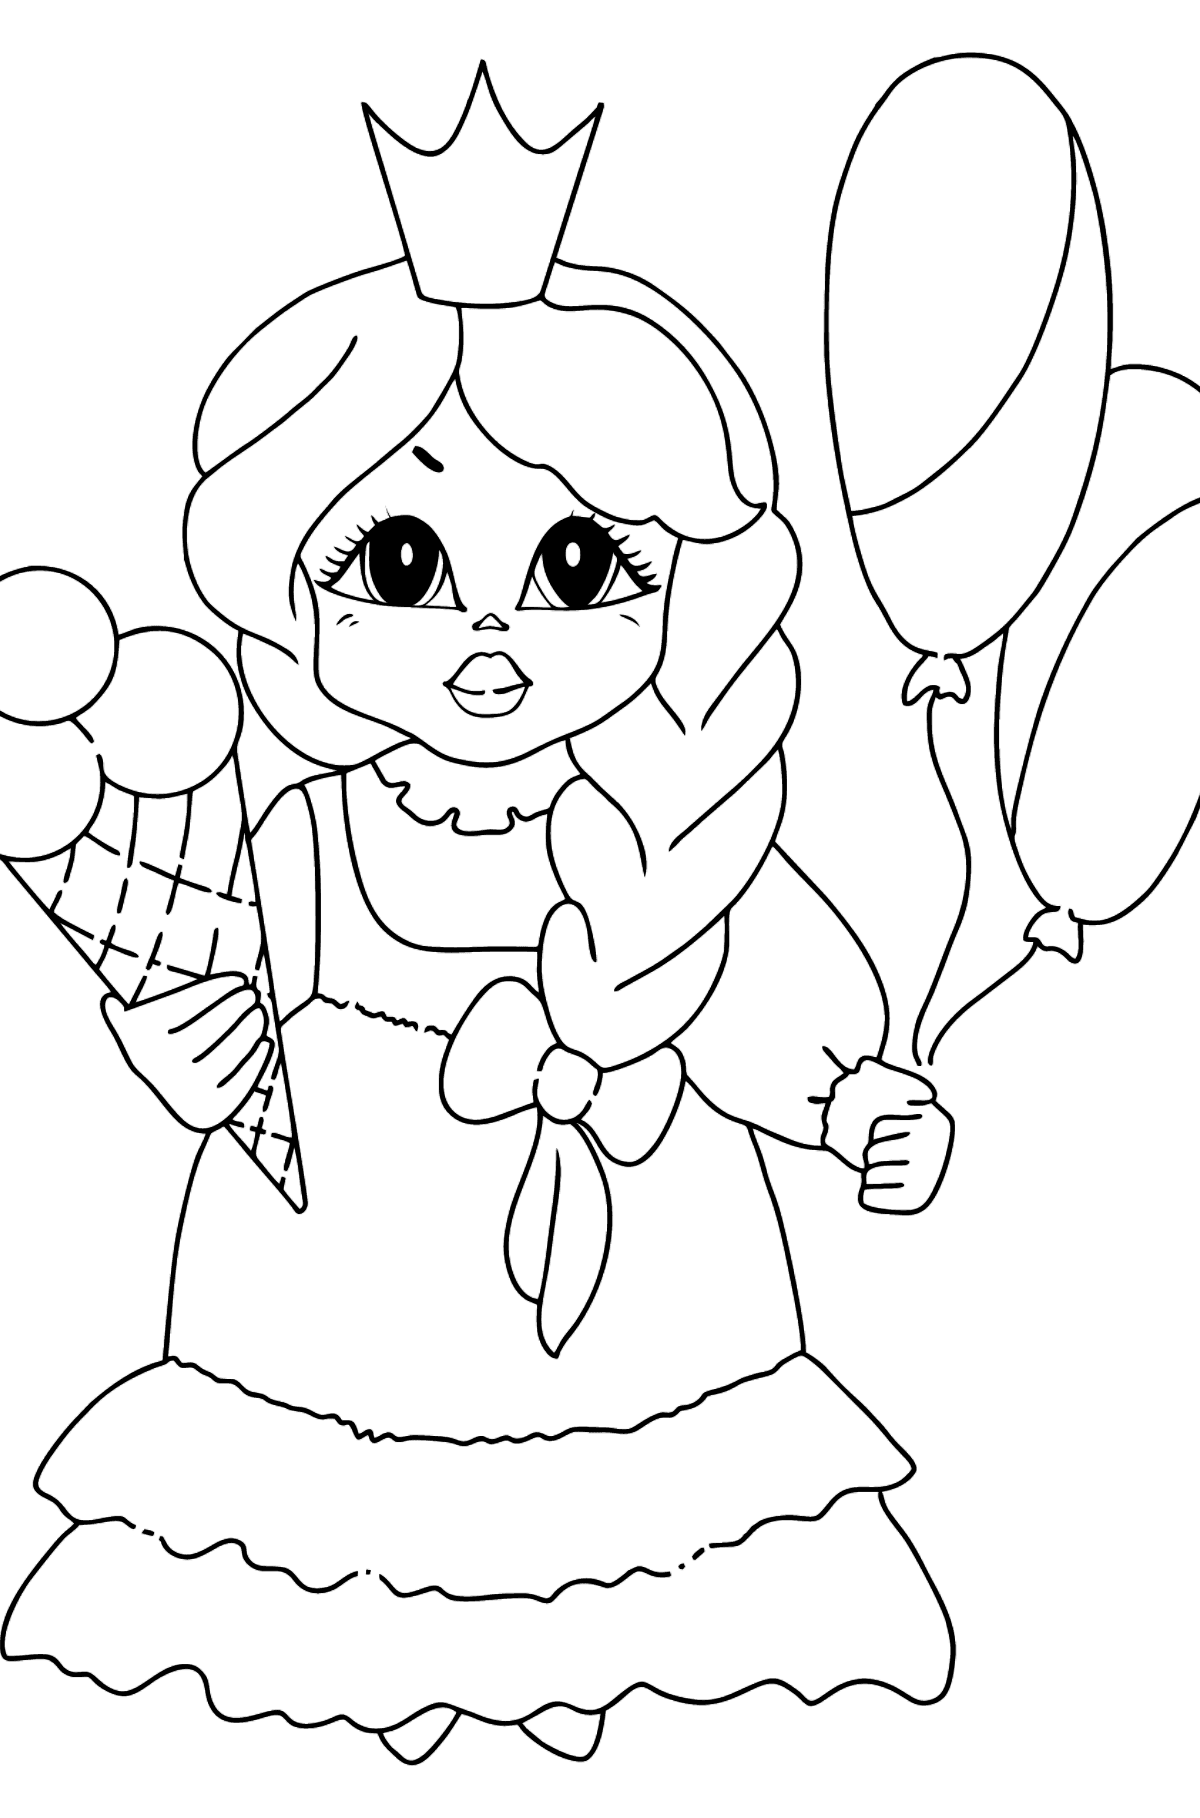 Coloring Page - A Princess with Ice Сream - Coloring Pages for Kids